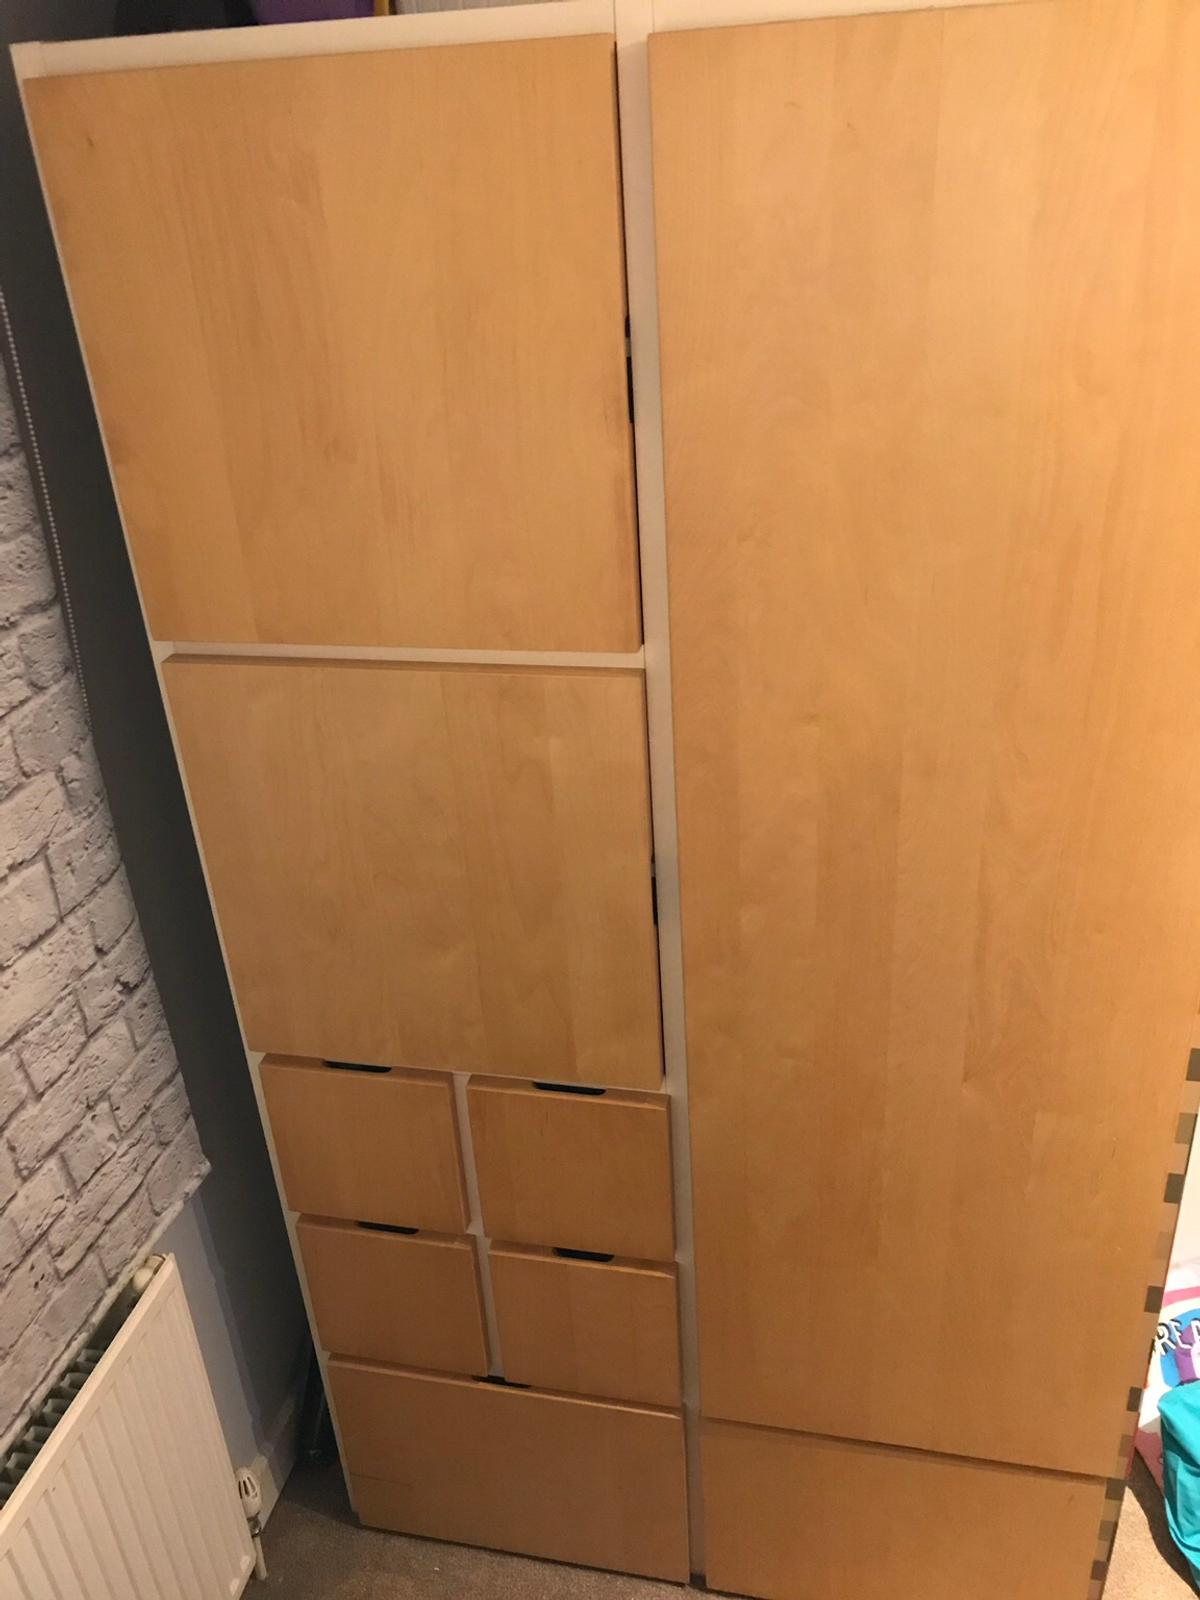 Minecraft Themed Wardrobe And 3 Storage Boxes In Oldham Fur